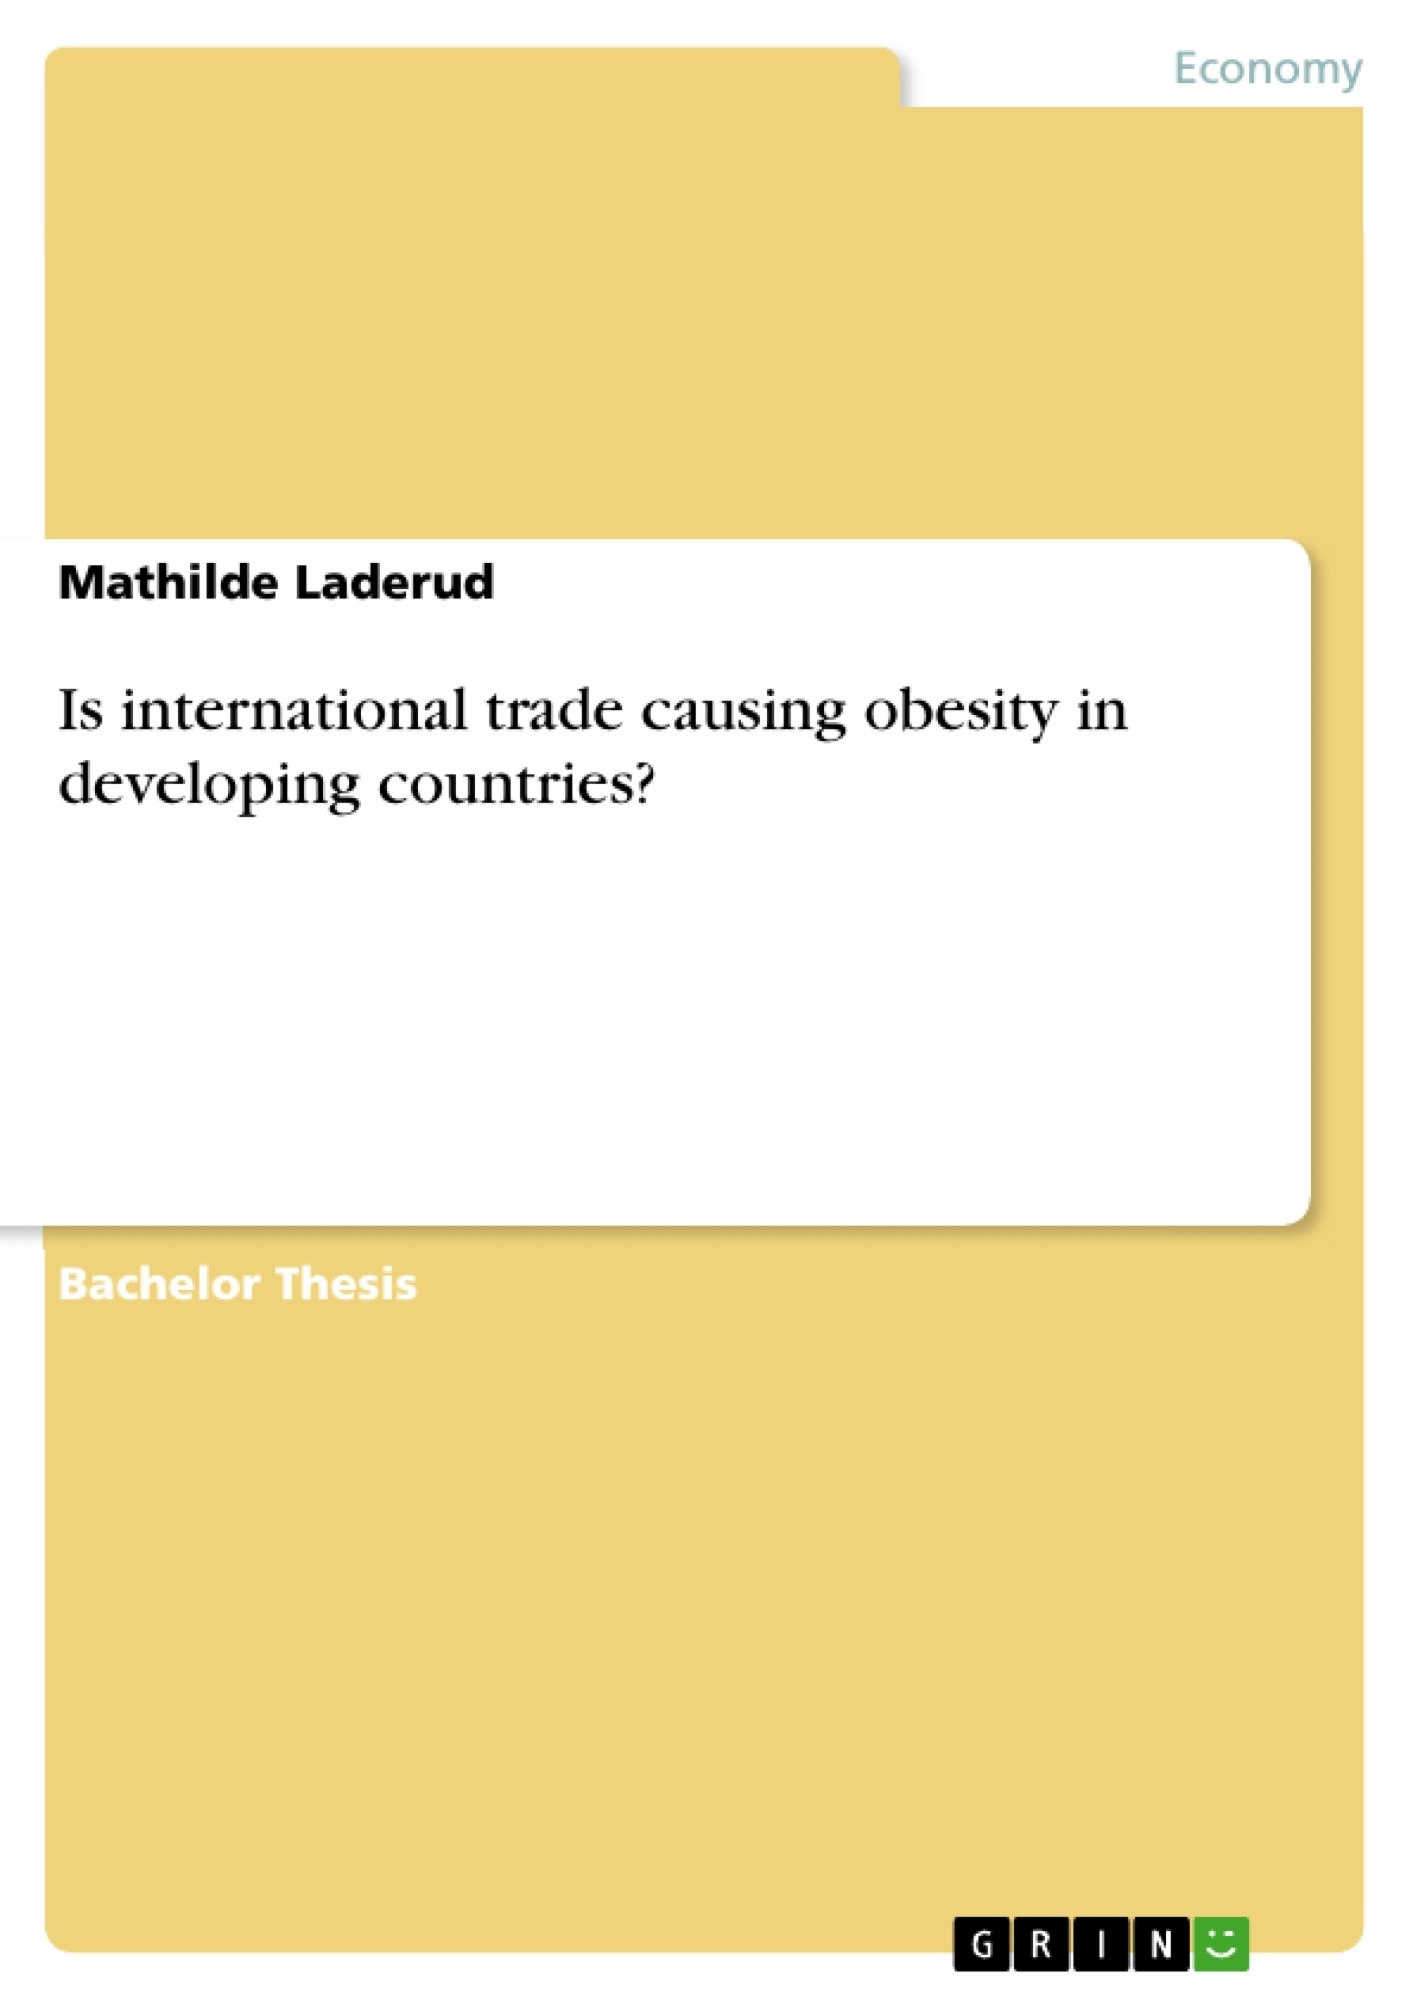 Title: Is international trade causing obesity in developing countries?